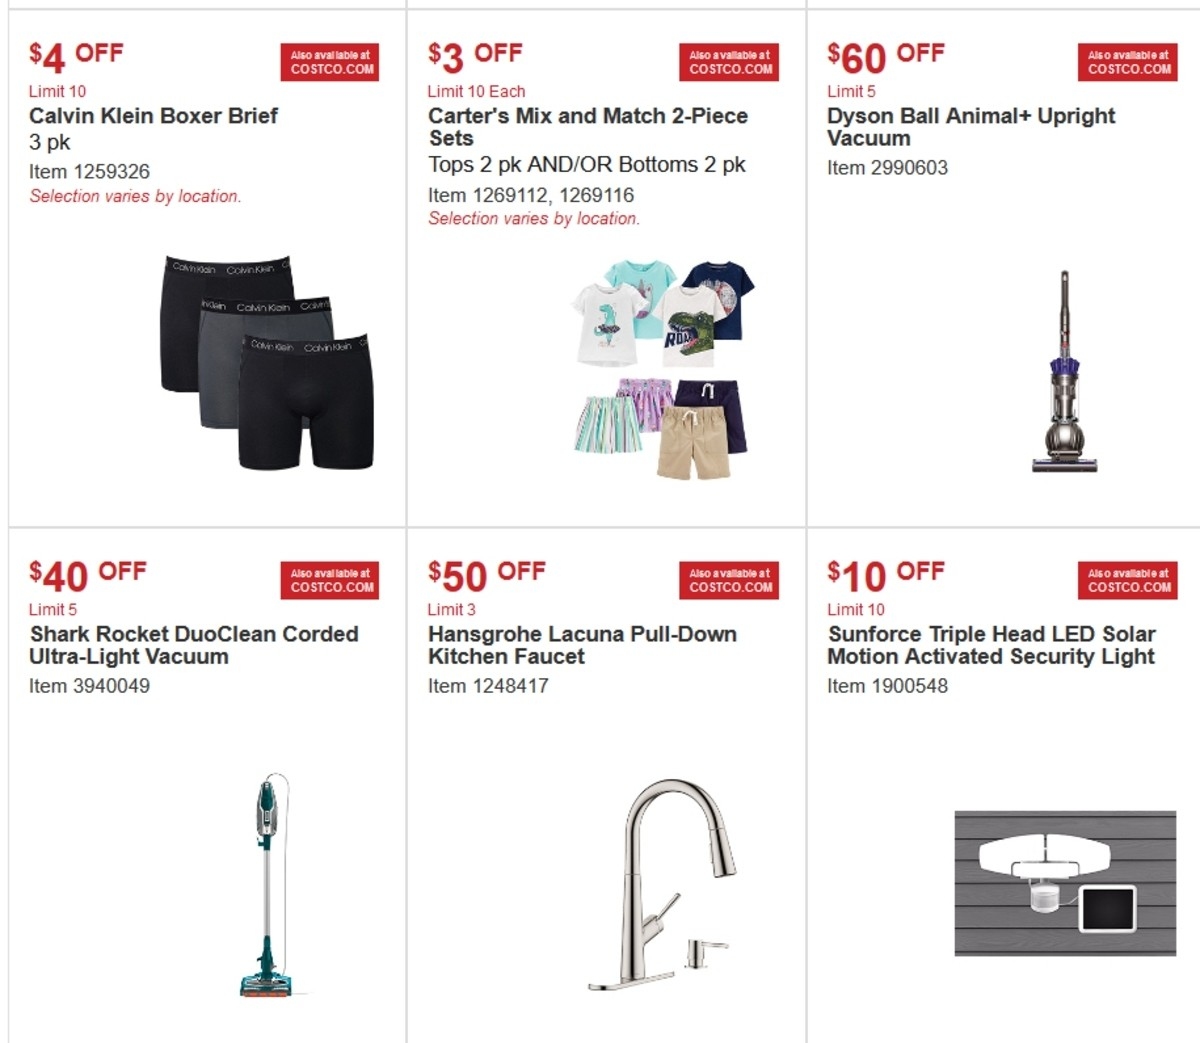 Costco Special Buys And Warehouse Savings For March 13